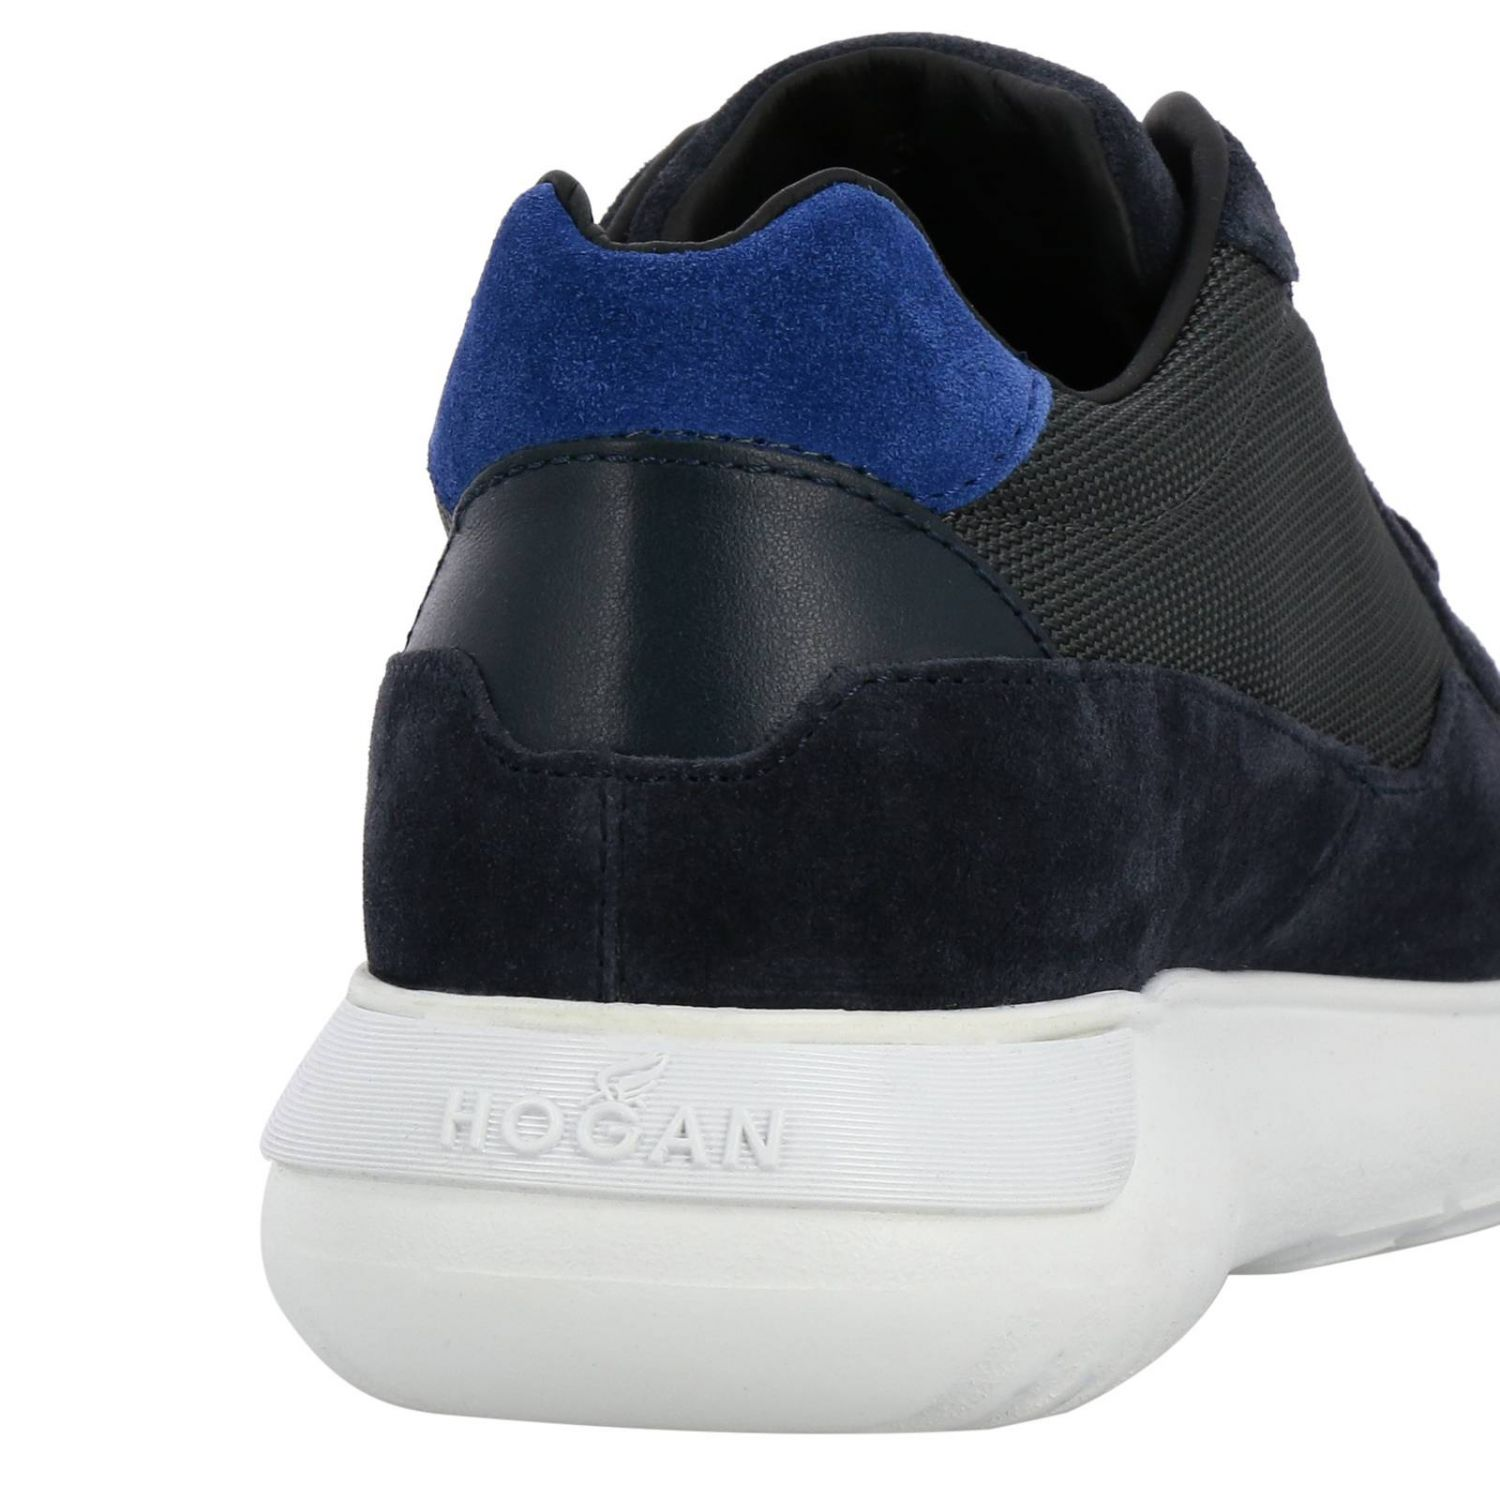 Sneakers Cube 371 in camoscio e micro rete con big H blue 4